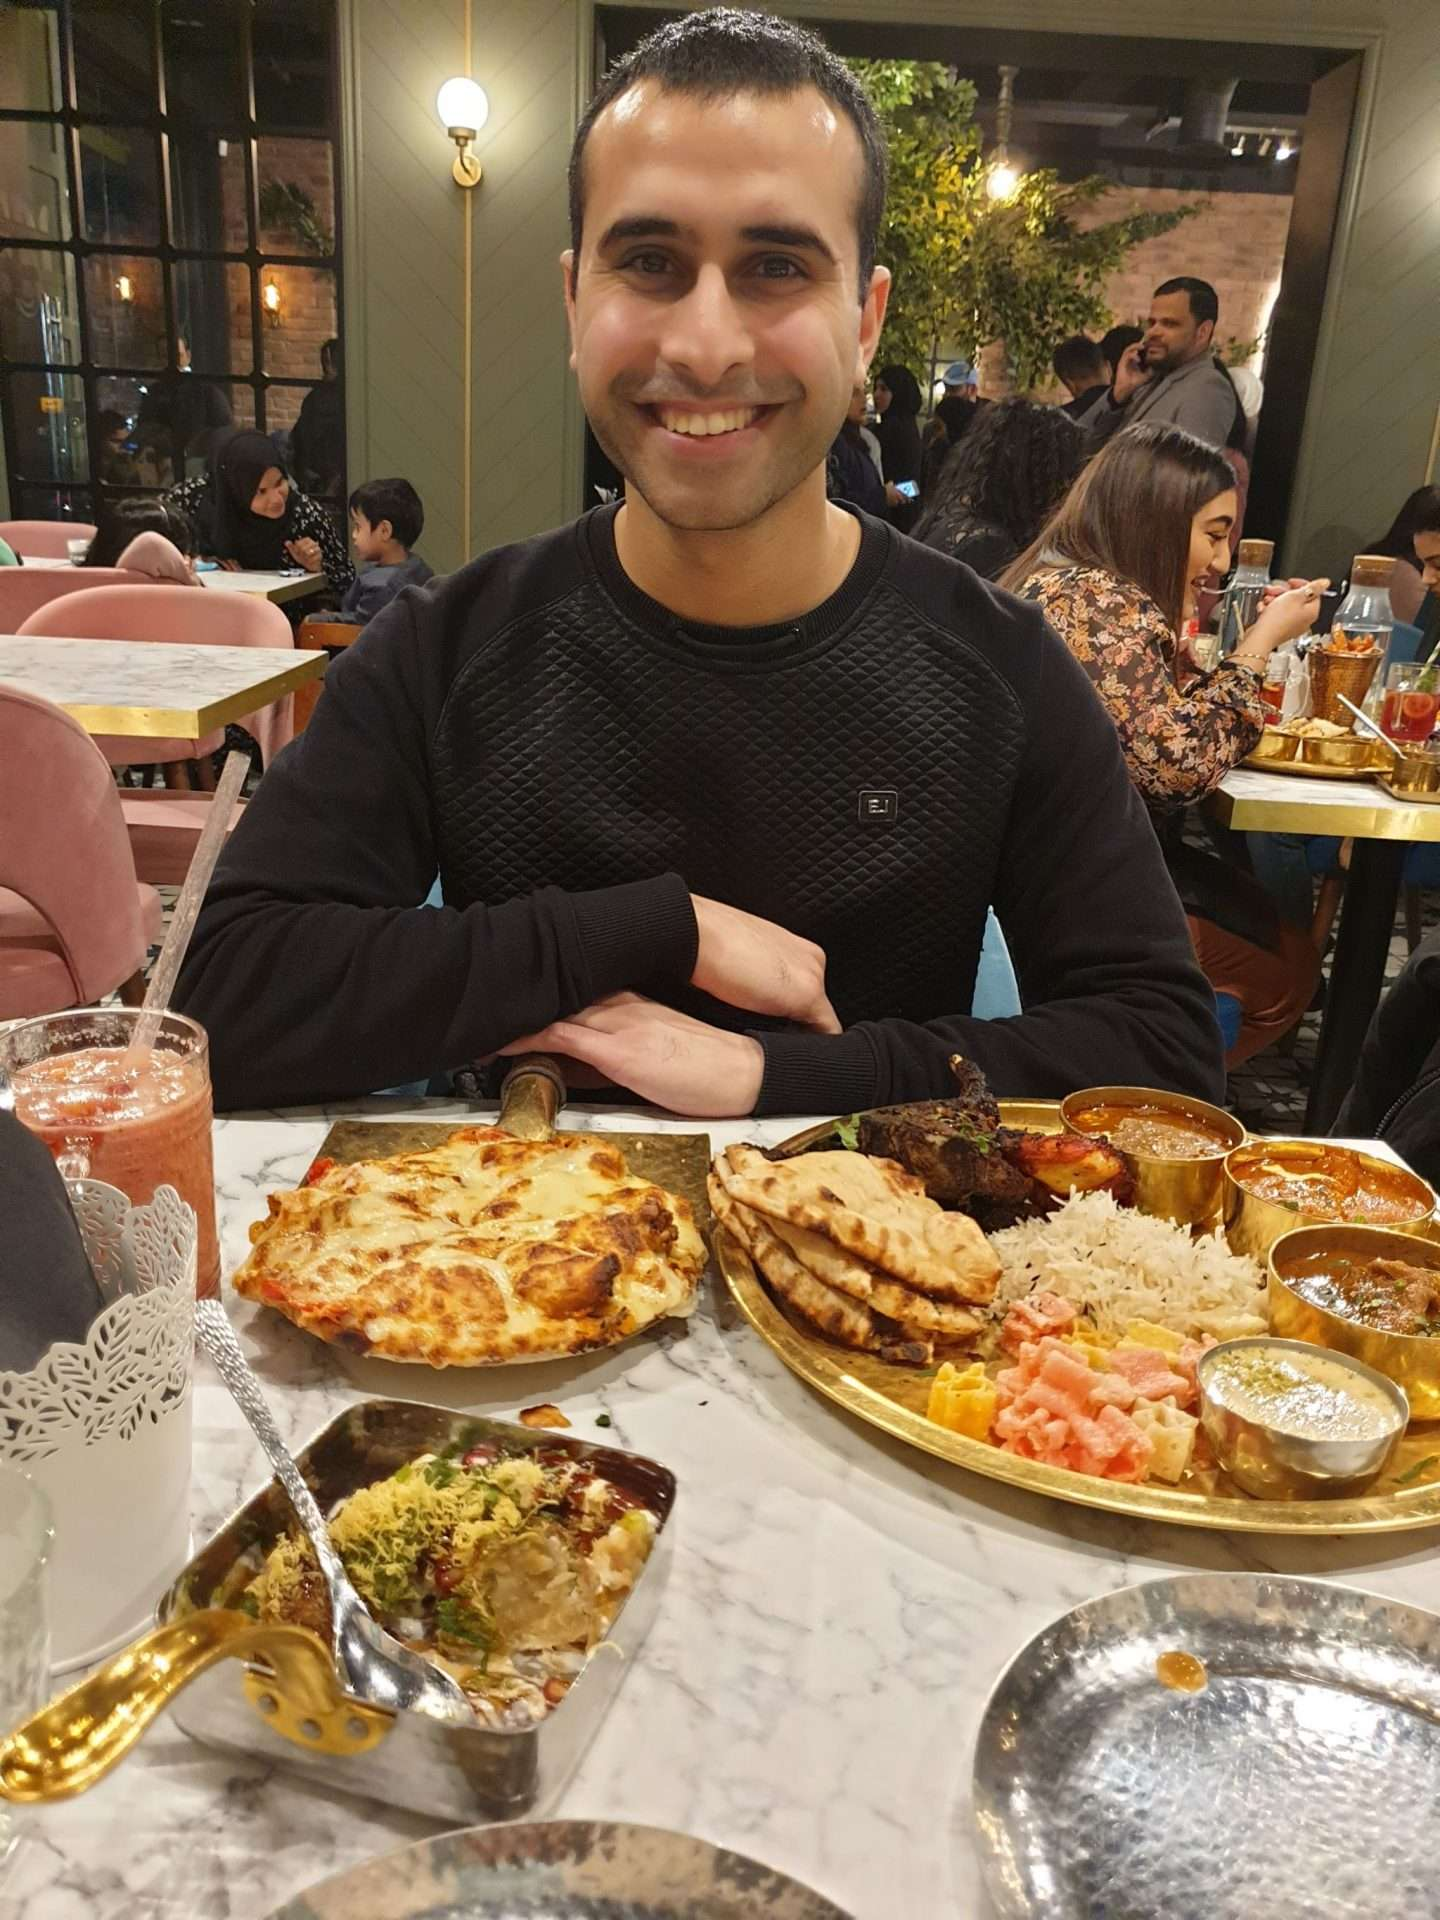 Adil Musa enjoying his meal at Saffron Street